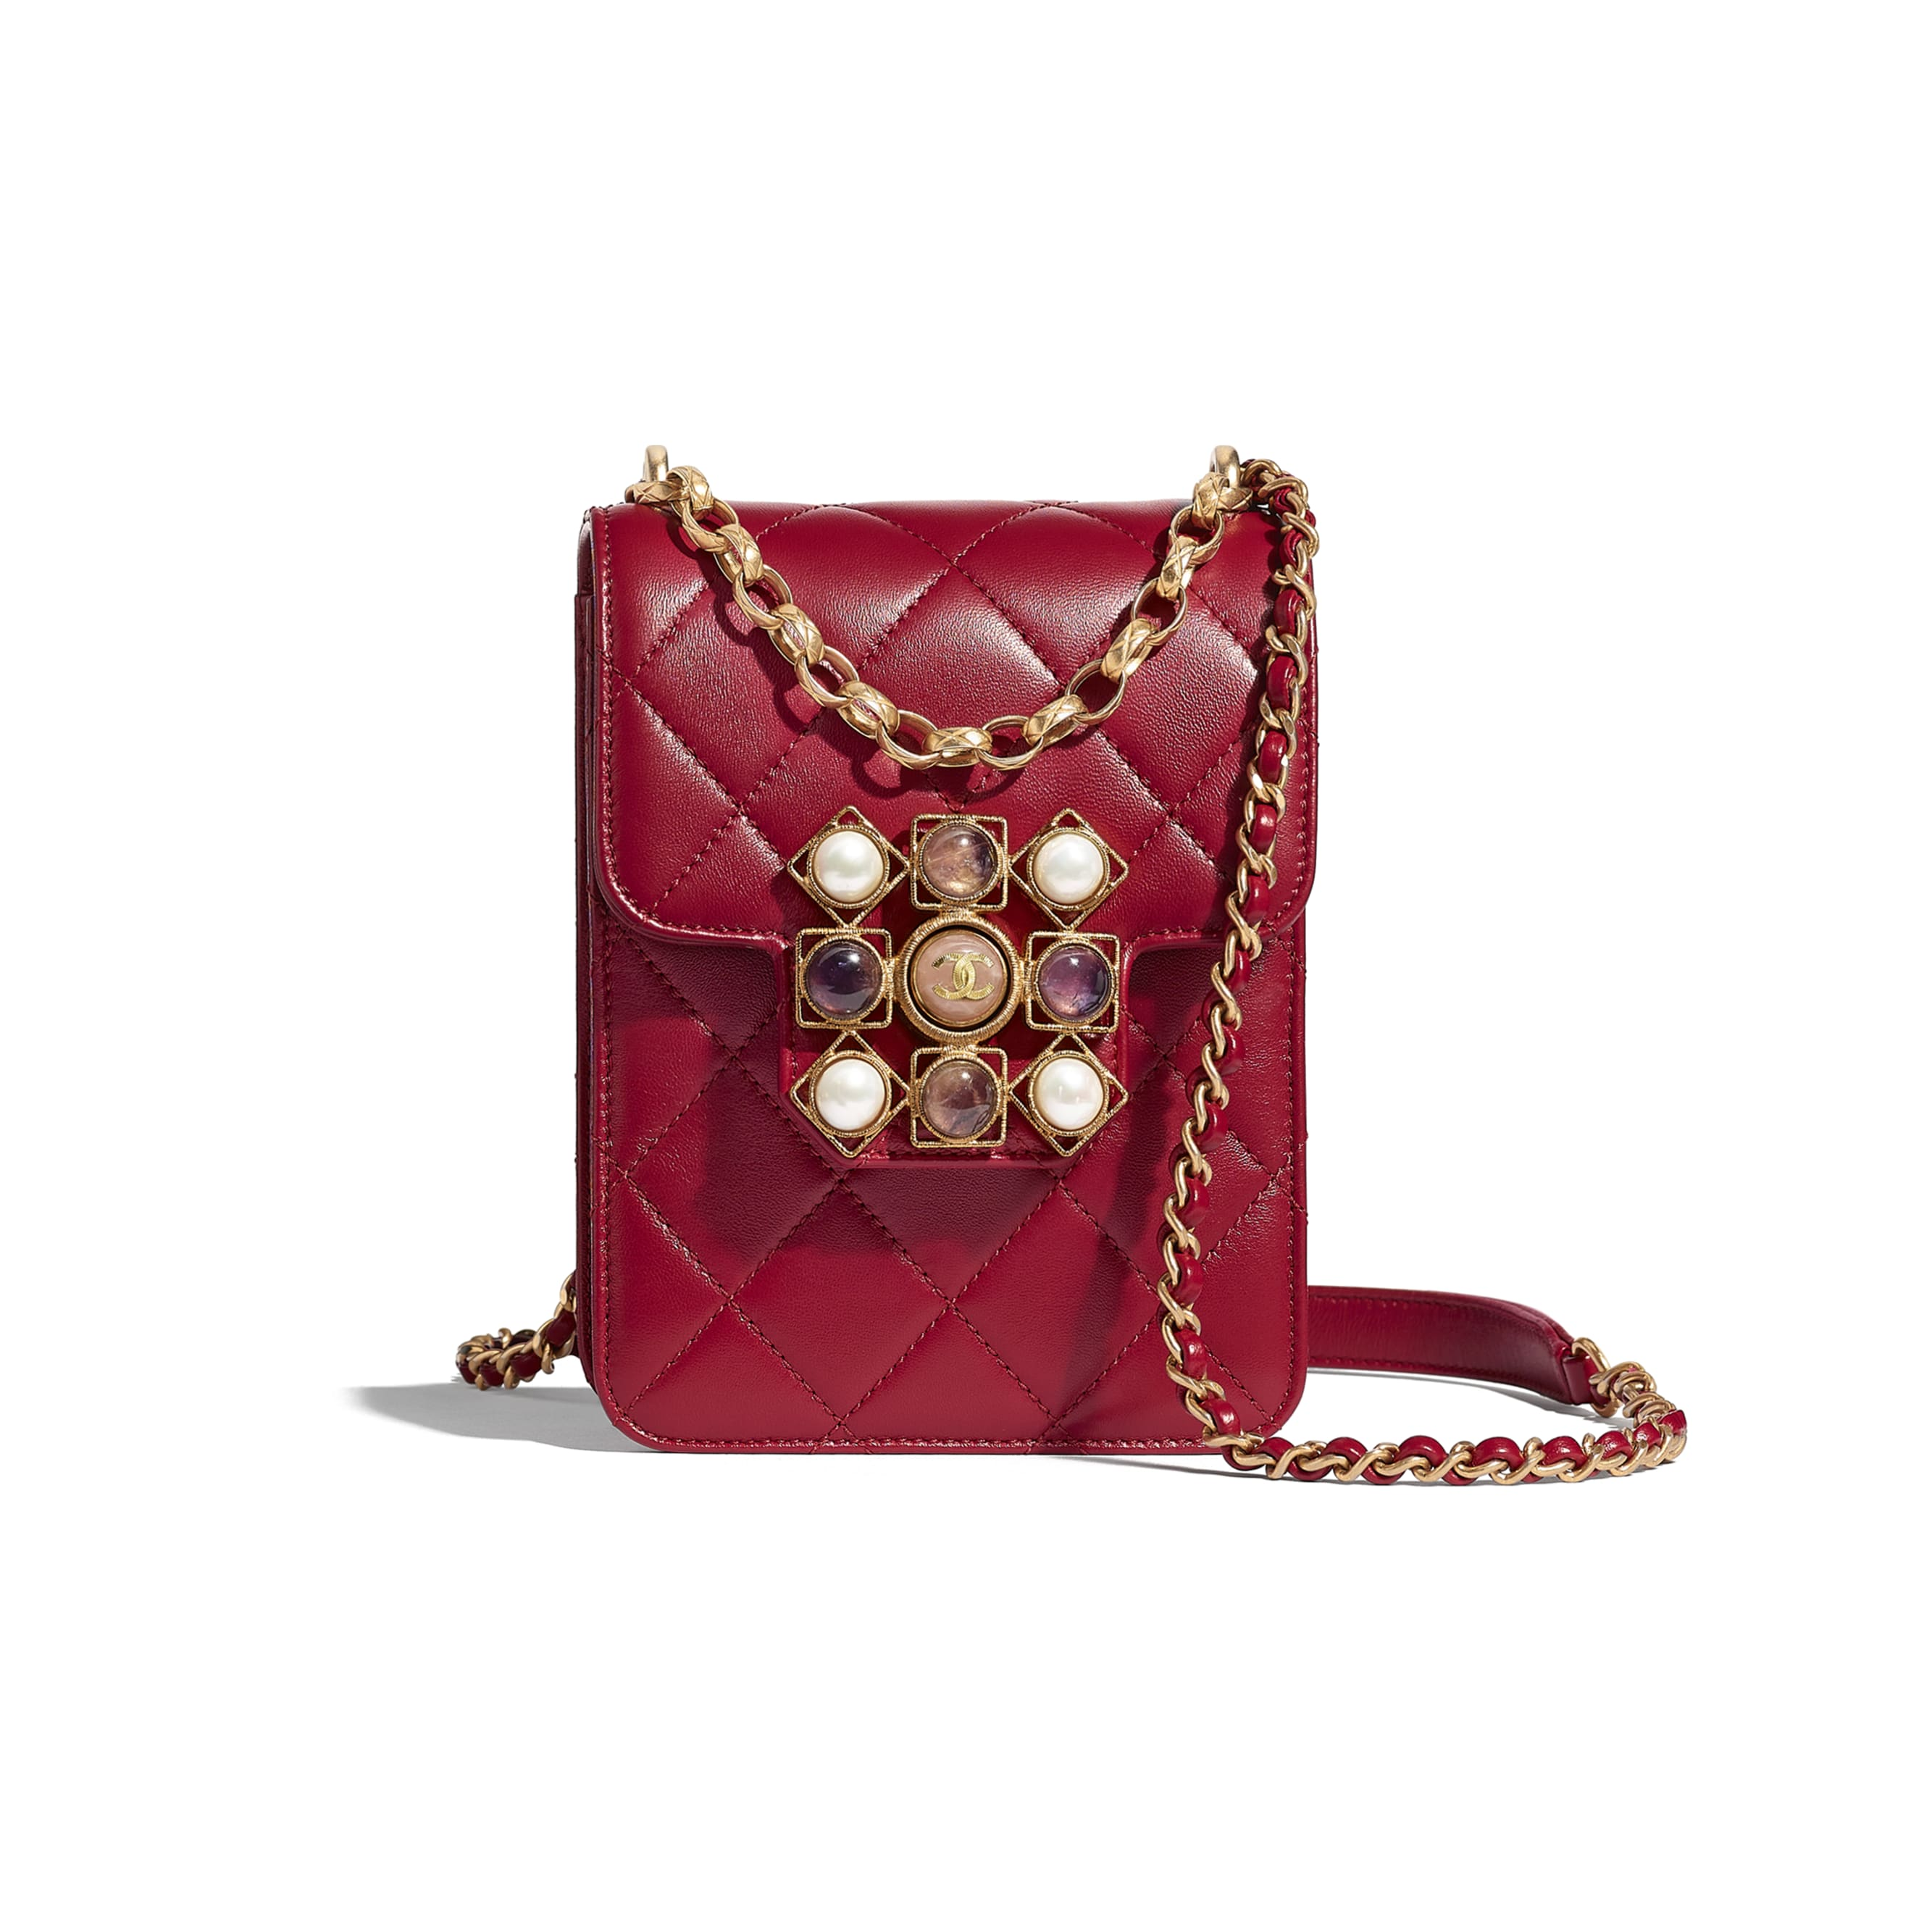 Flap Bag - Fuchsia - Calfskin, Pearls, Amethyst, Quartz & Gold-Tone Metal - CHANEL - Default view - see standard sized version